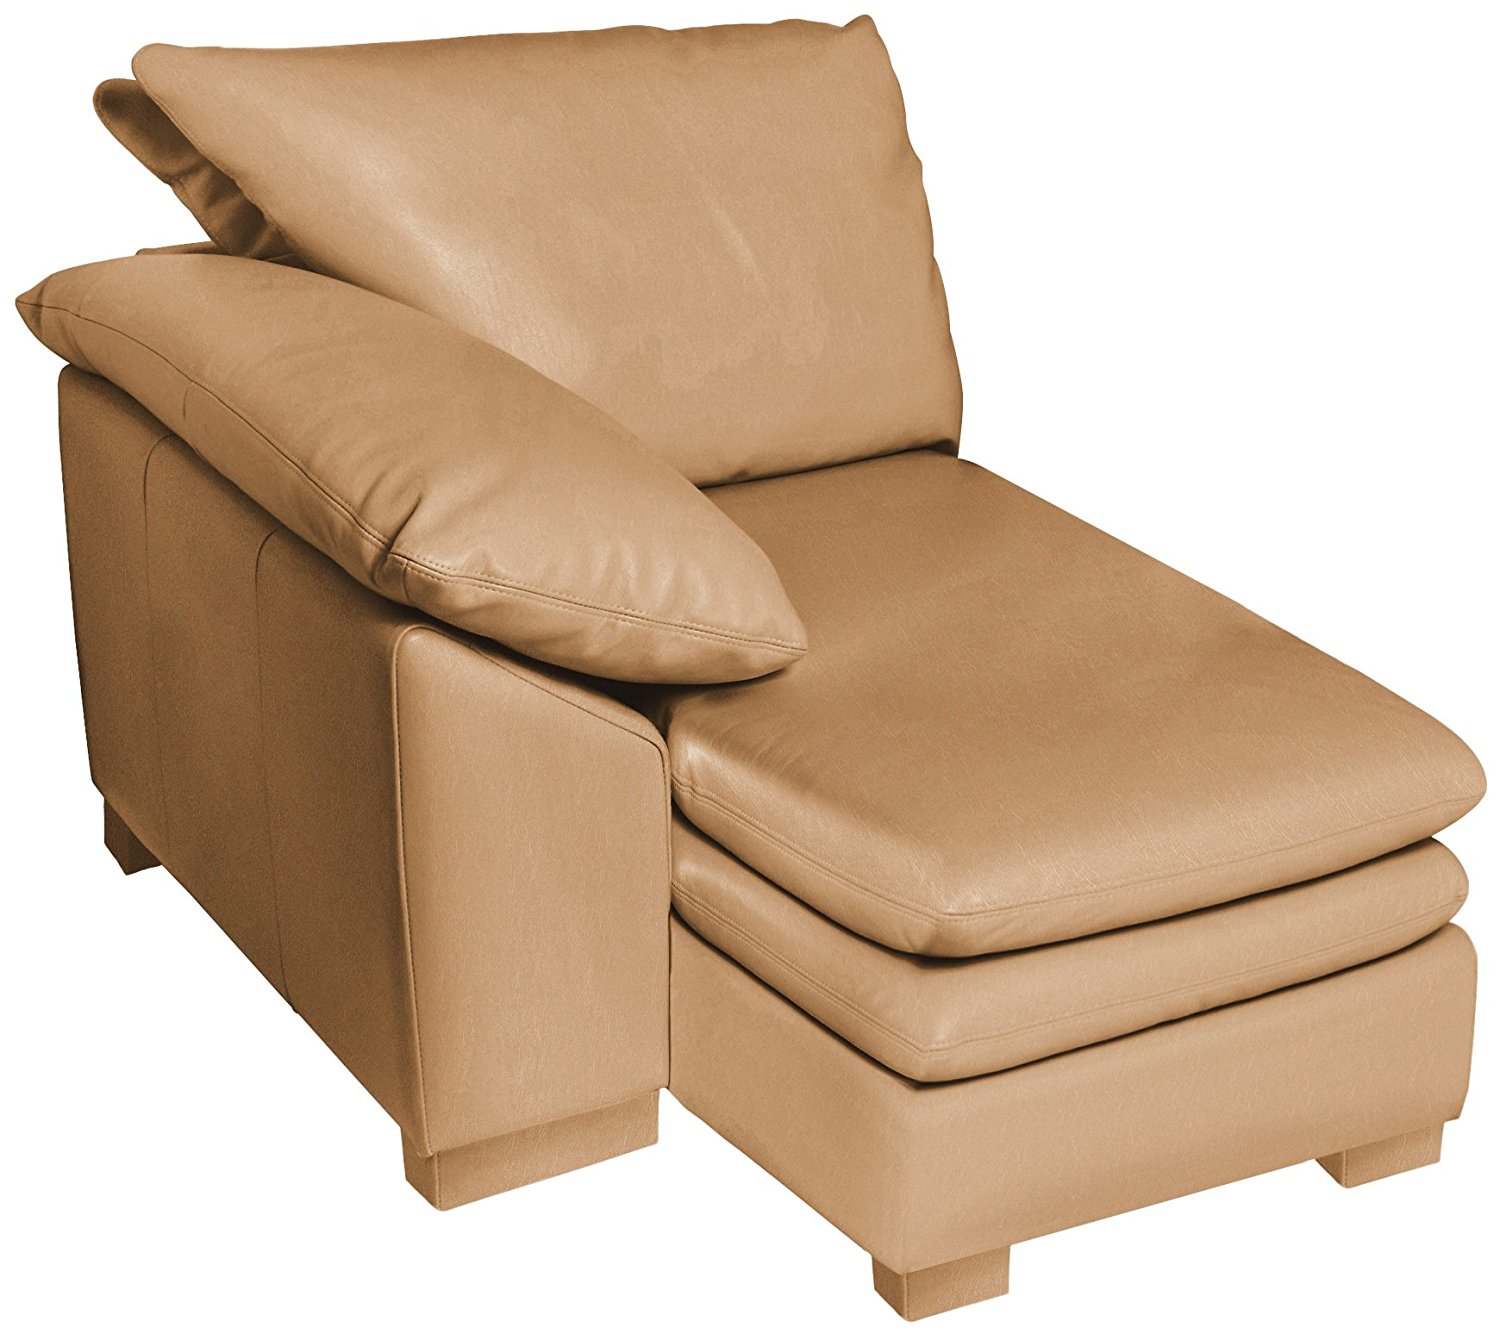 Omnia Leather Fargo Left Arm Chaise in Leather, Standard No Nail Head, Softstations Mica